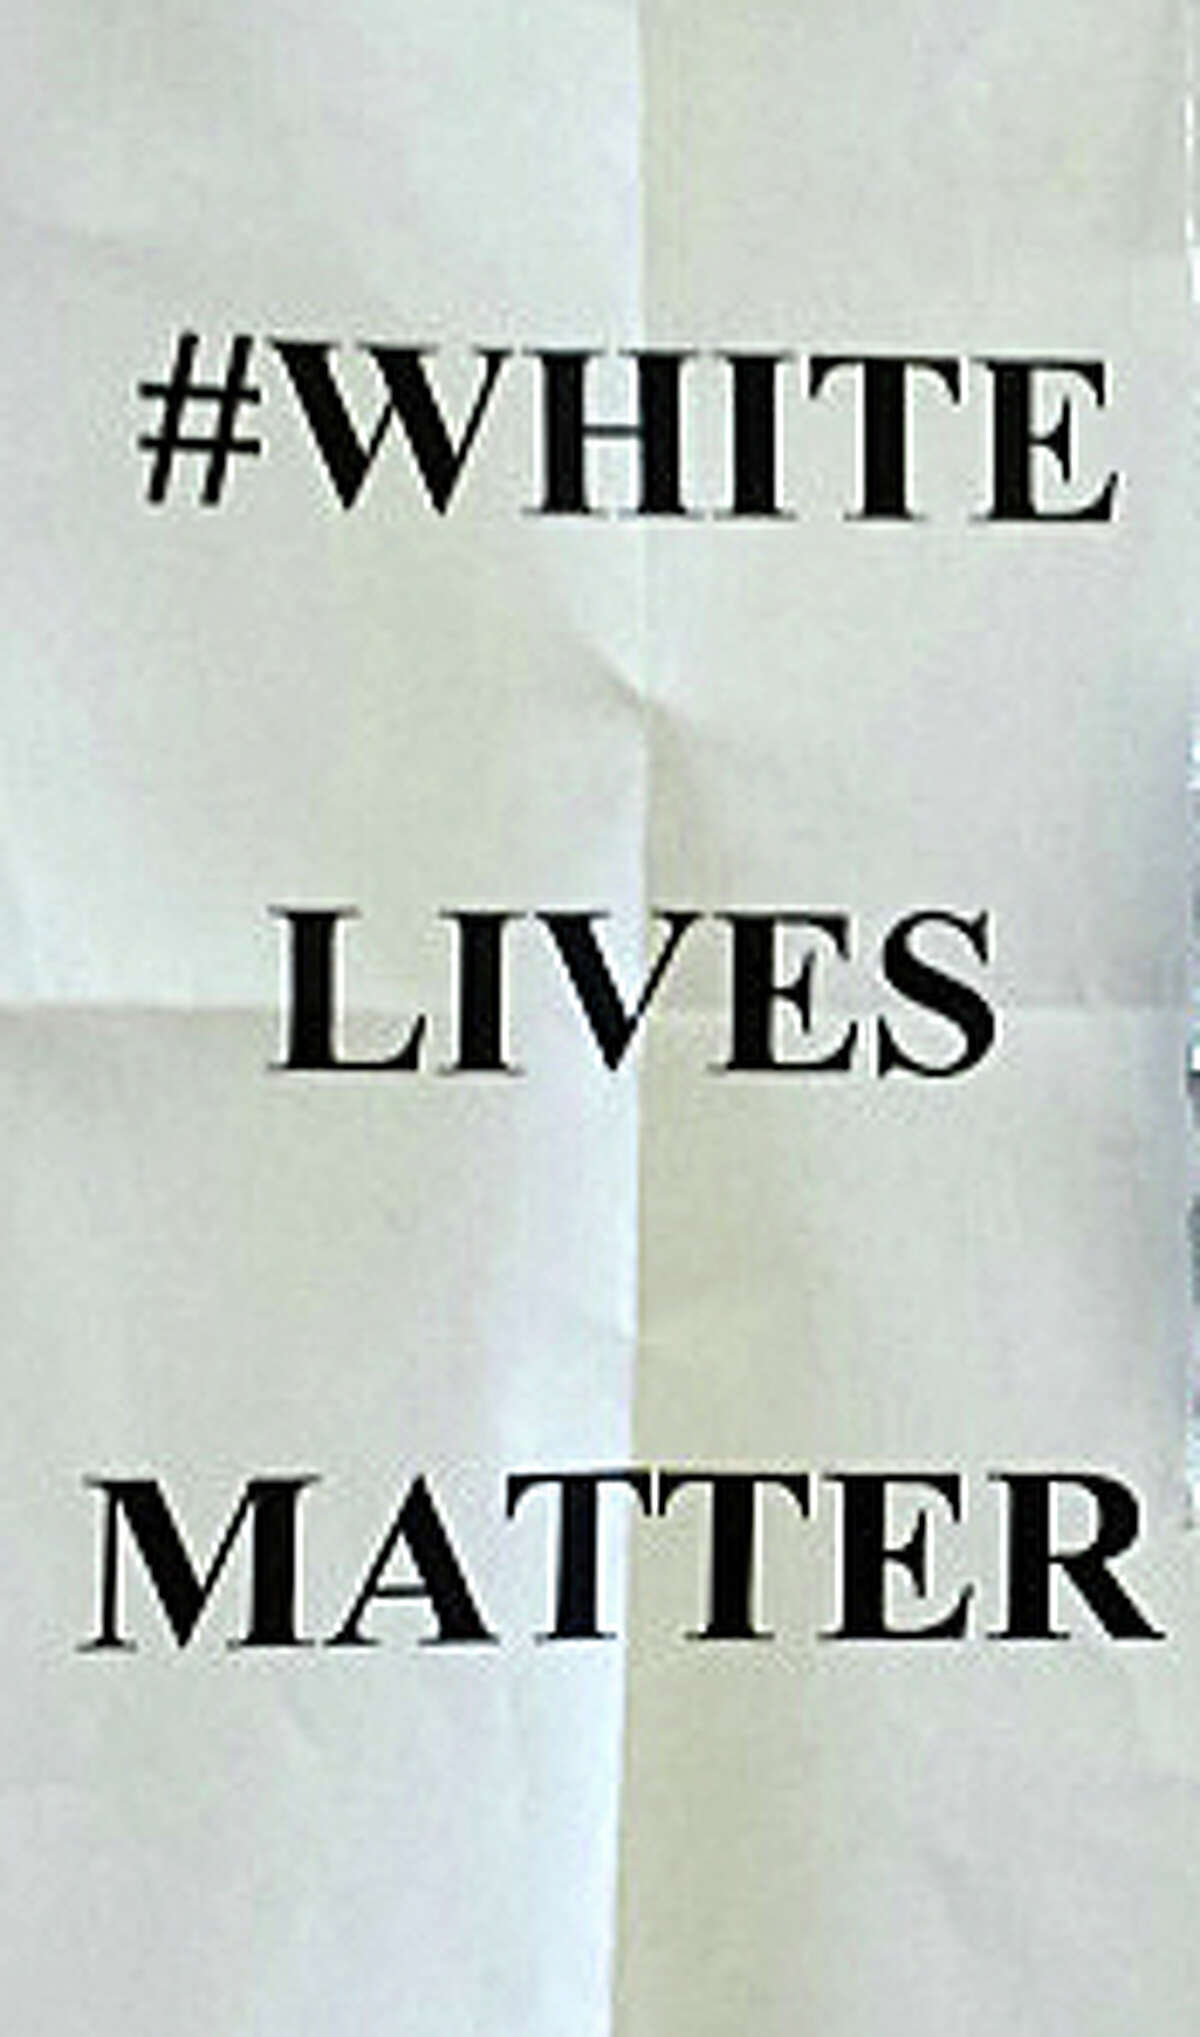 """Flyers with the message, """"#White Lives Matter,"""" an apparent response to the #Black Lives Matter hashtag widely used on social media after the deaths of young black men confronted by police, have been tossed on local lawns over the last few days."""